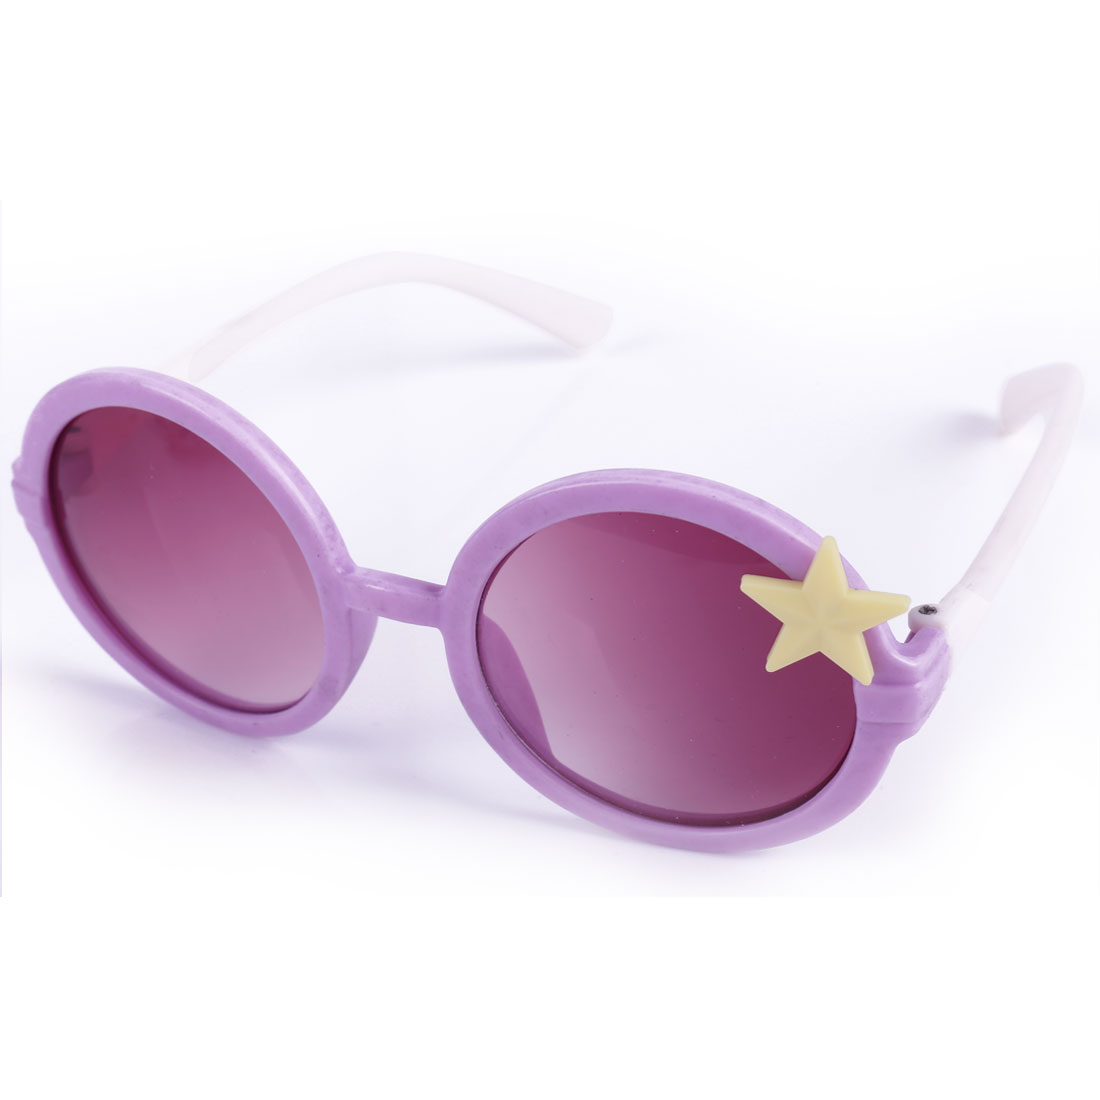 Children Kids Star Decor Plastic Full Rim Sunglasses Purple White